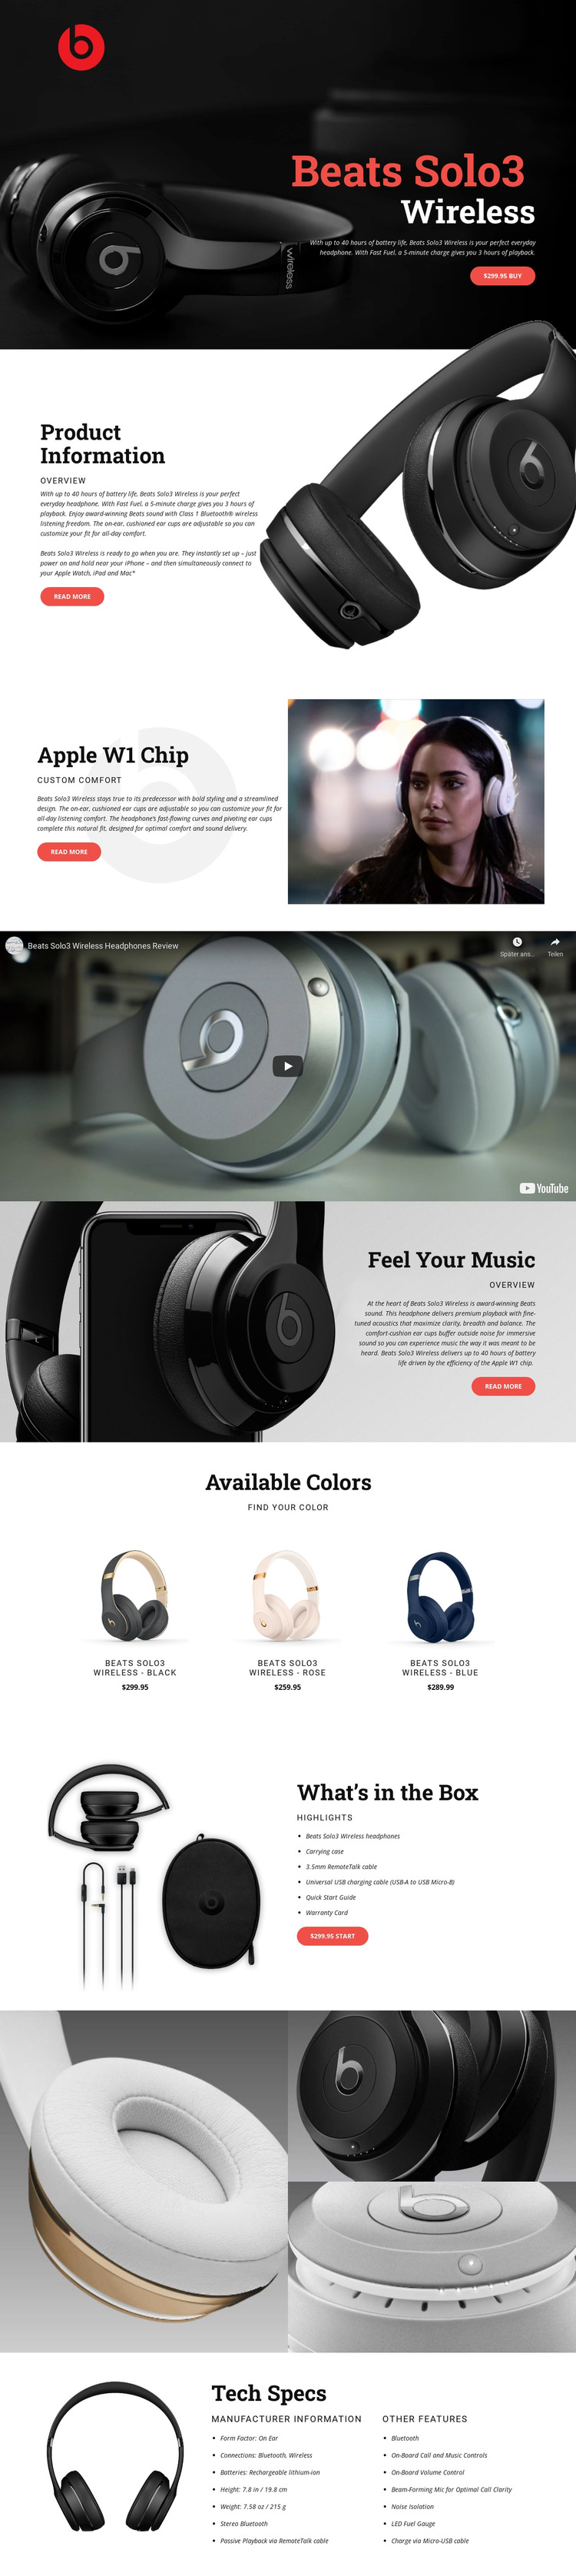 Outstanding quality of music HTML5 Template